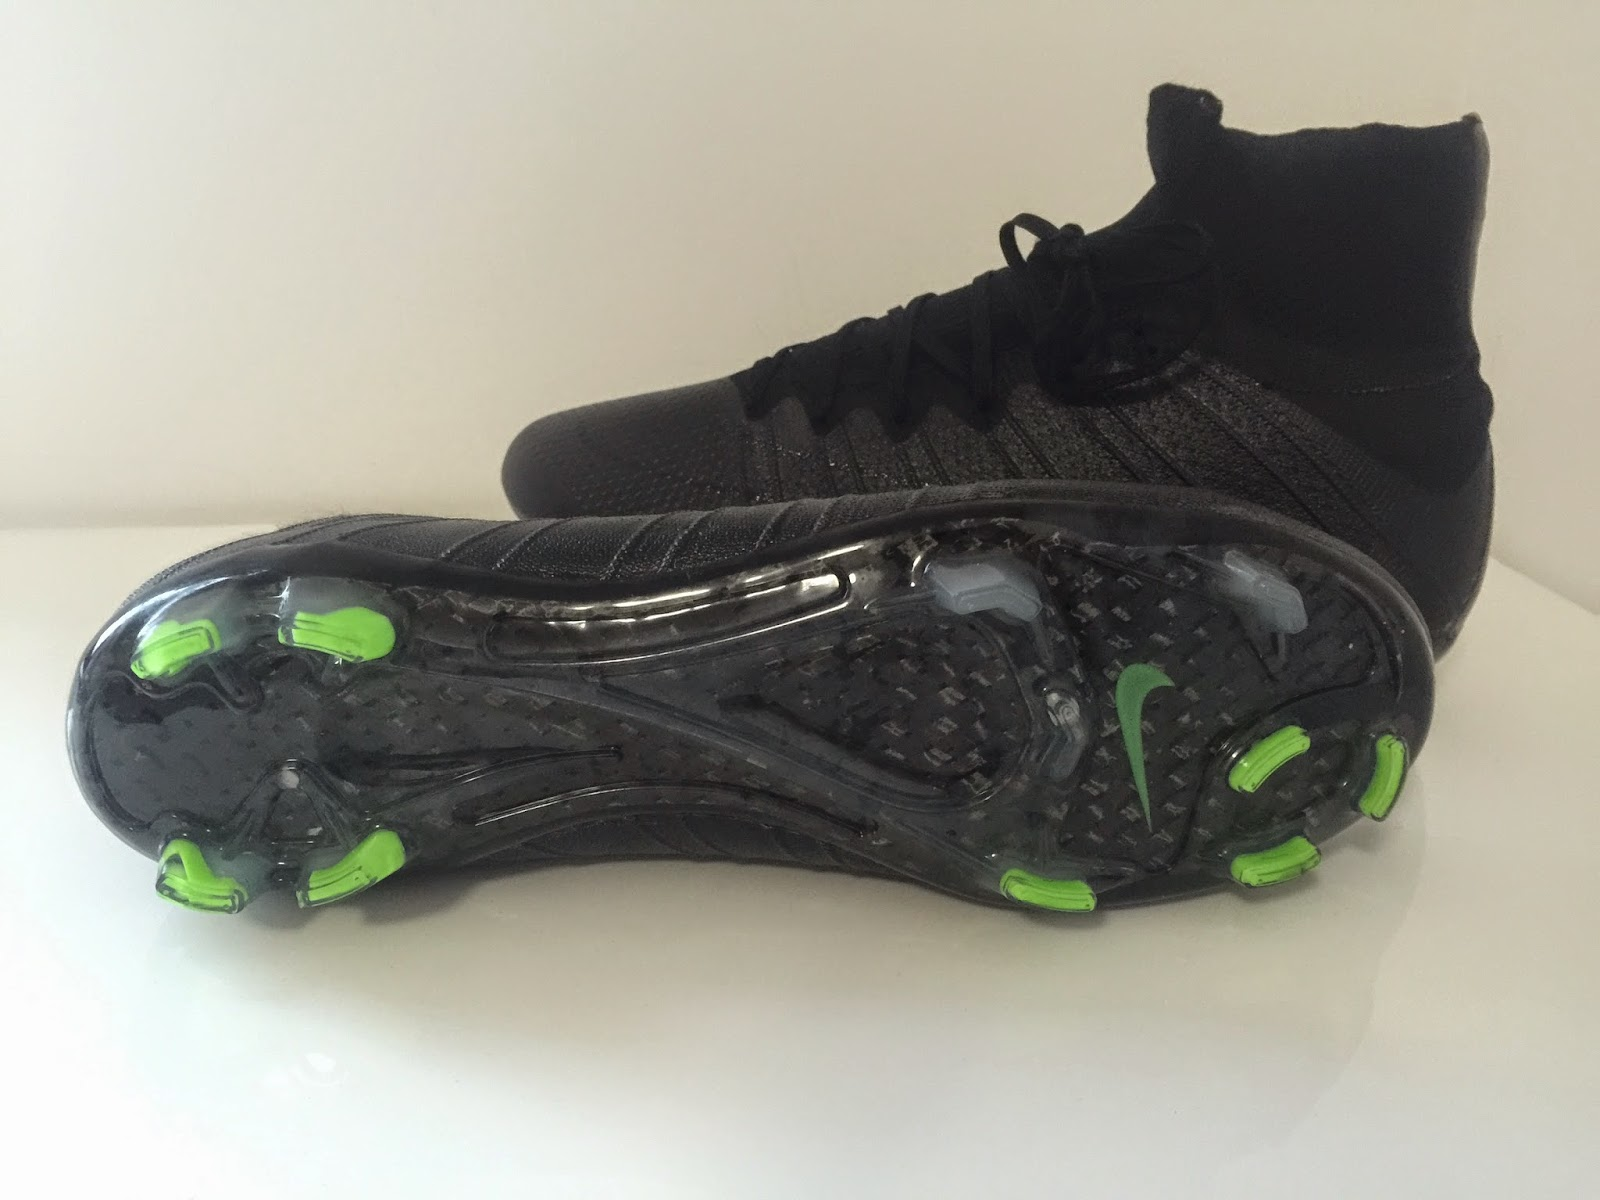 9f7f7c03d With the upper of the neck blackout Nike Mercurial Superfly Boots  completely drenched in black color